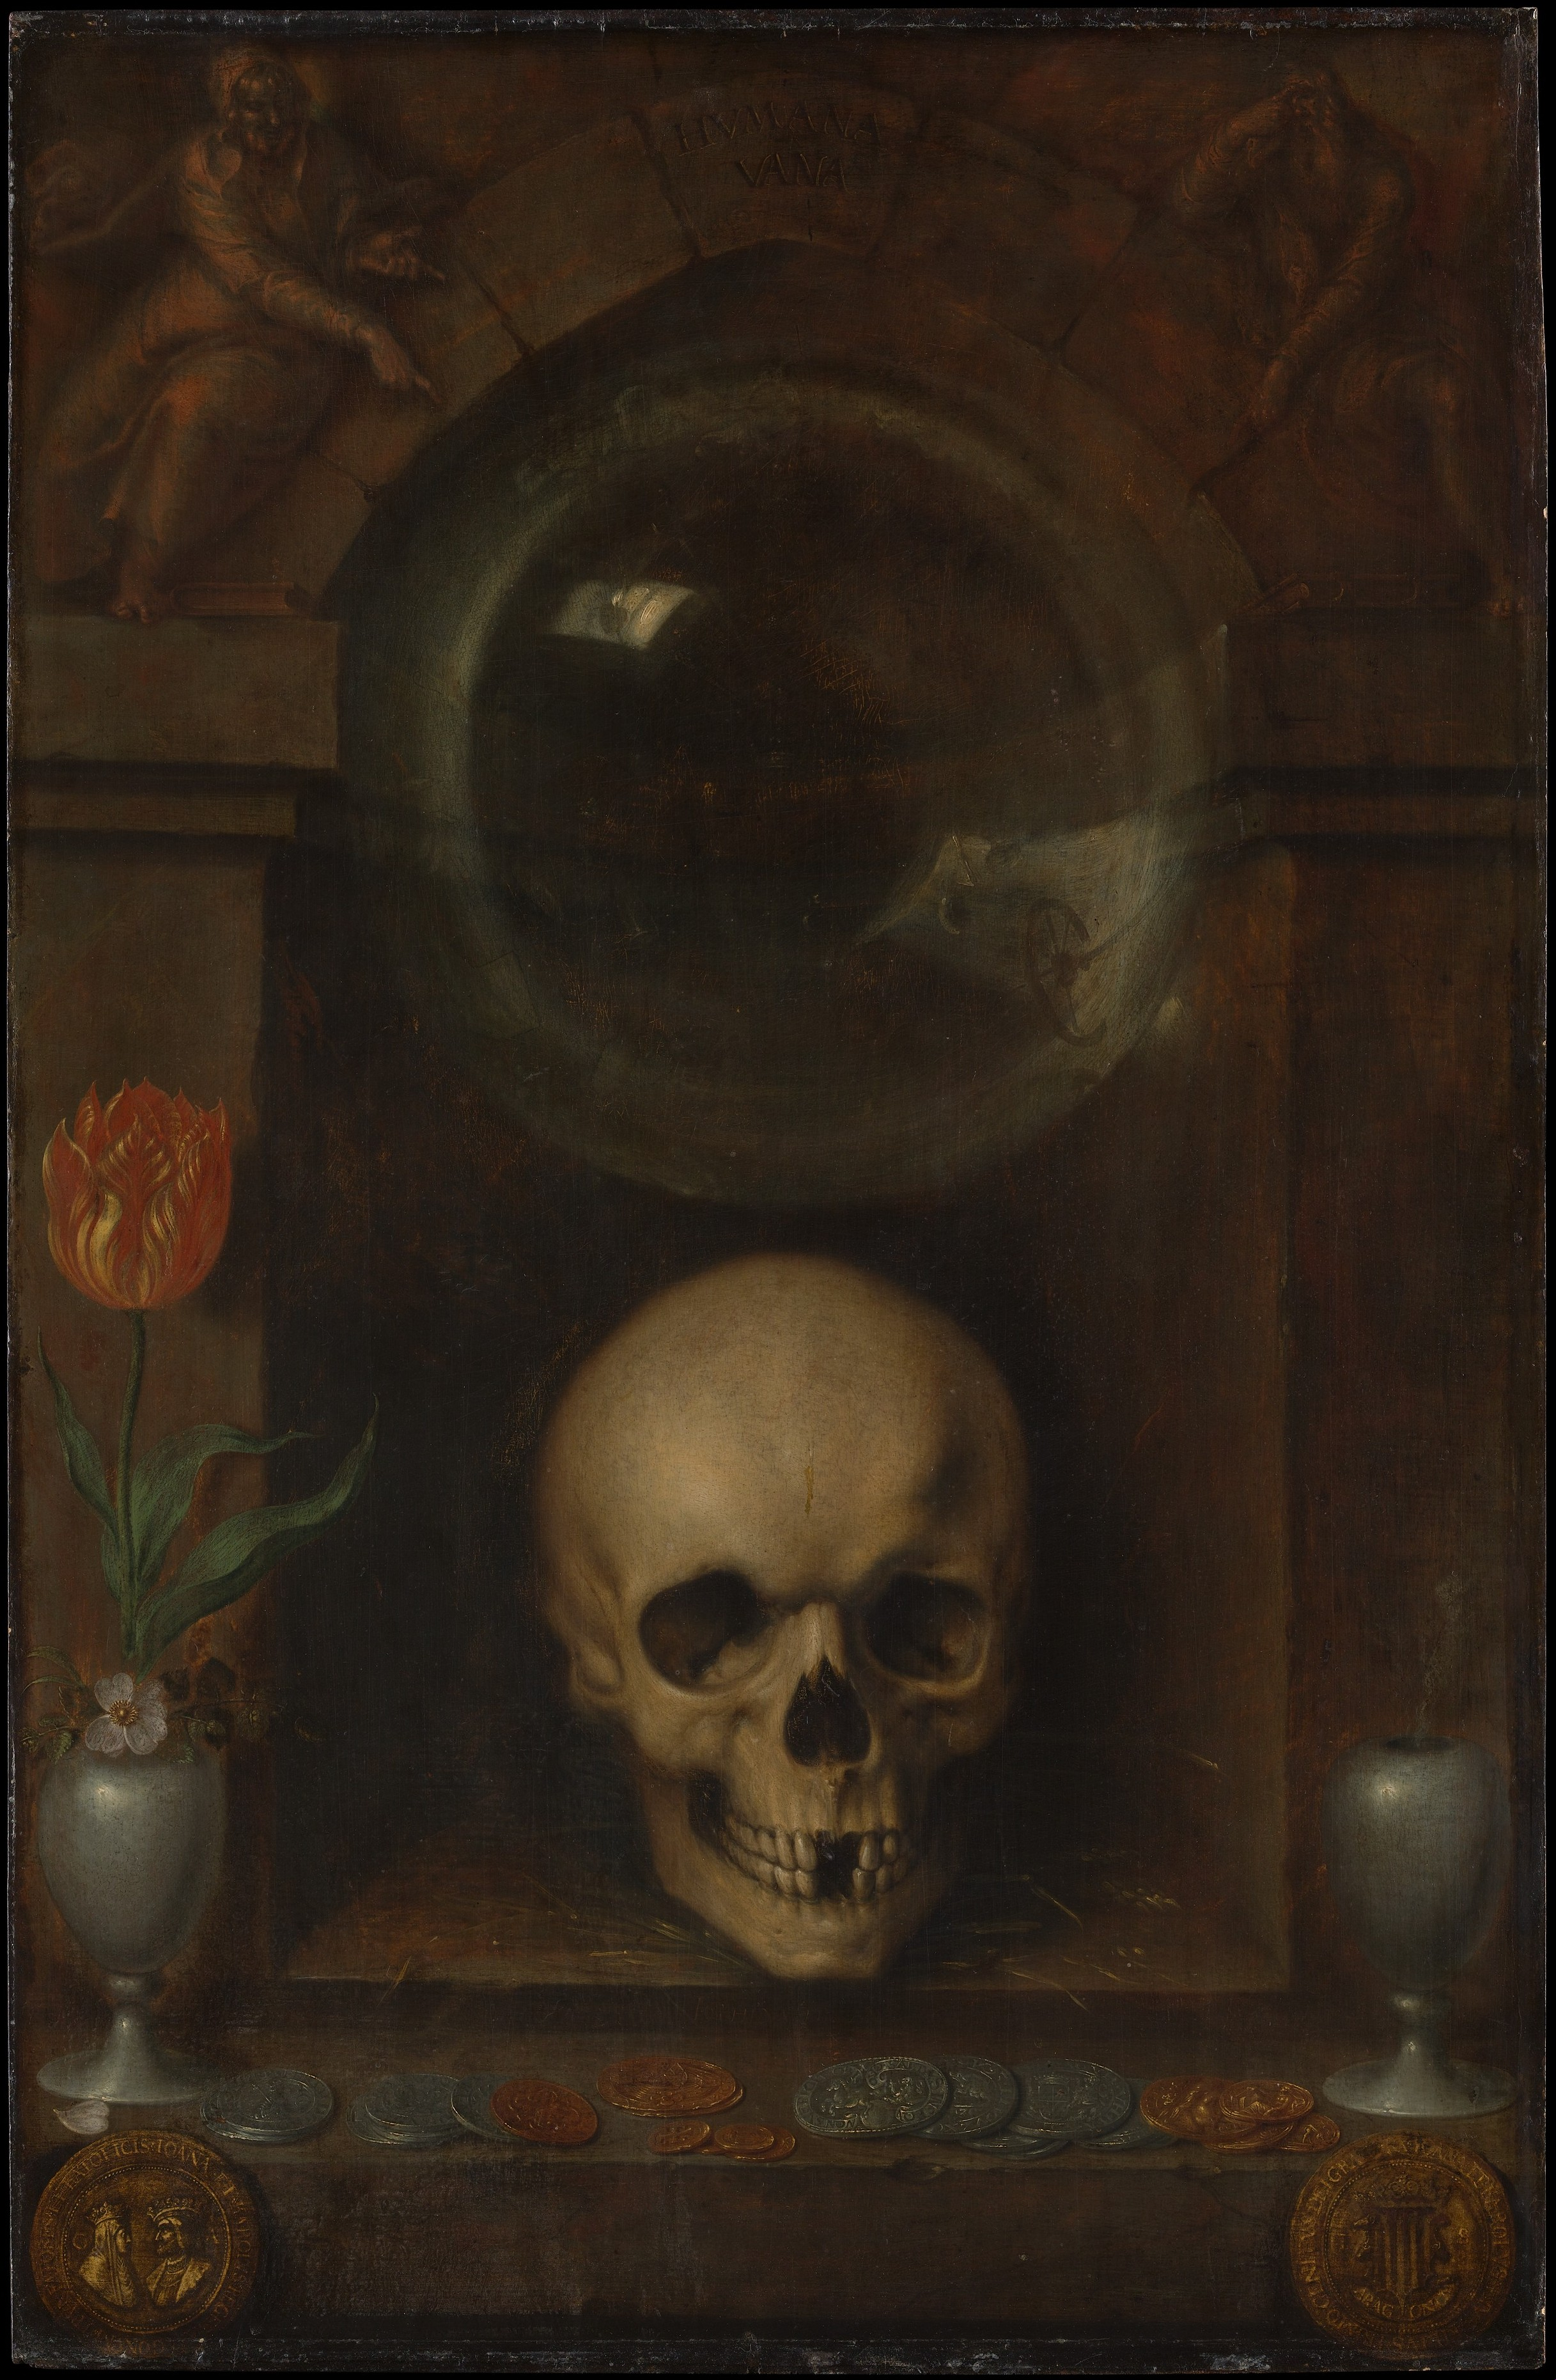 http://upload.wikimedia.org/wikipedia/commons/a/a5/Jacob_de_Gheyn_-_Vanitas.JPG